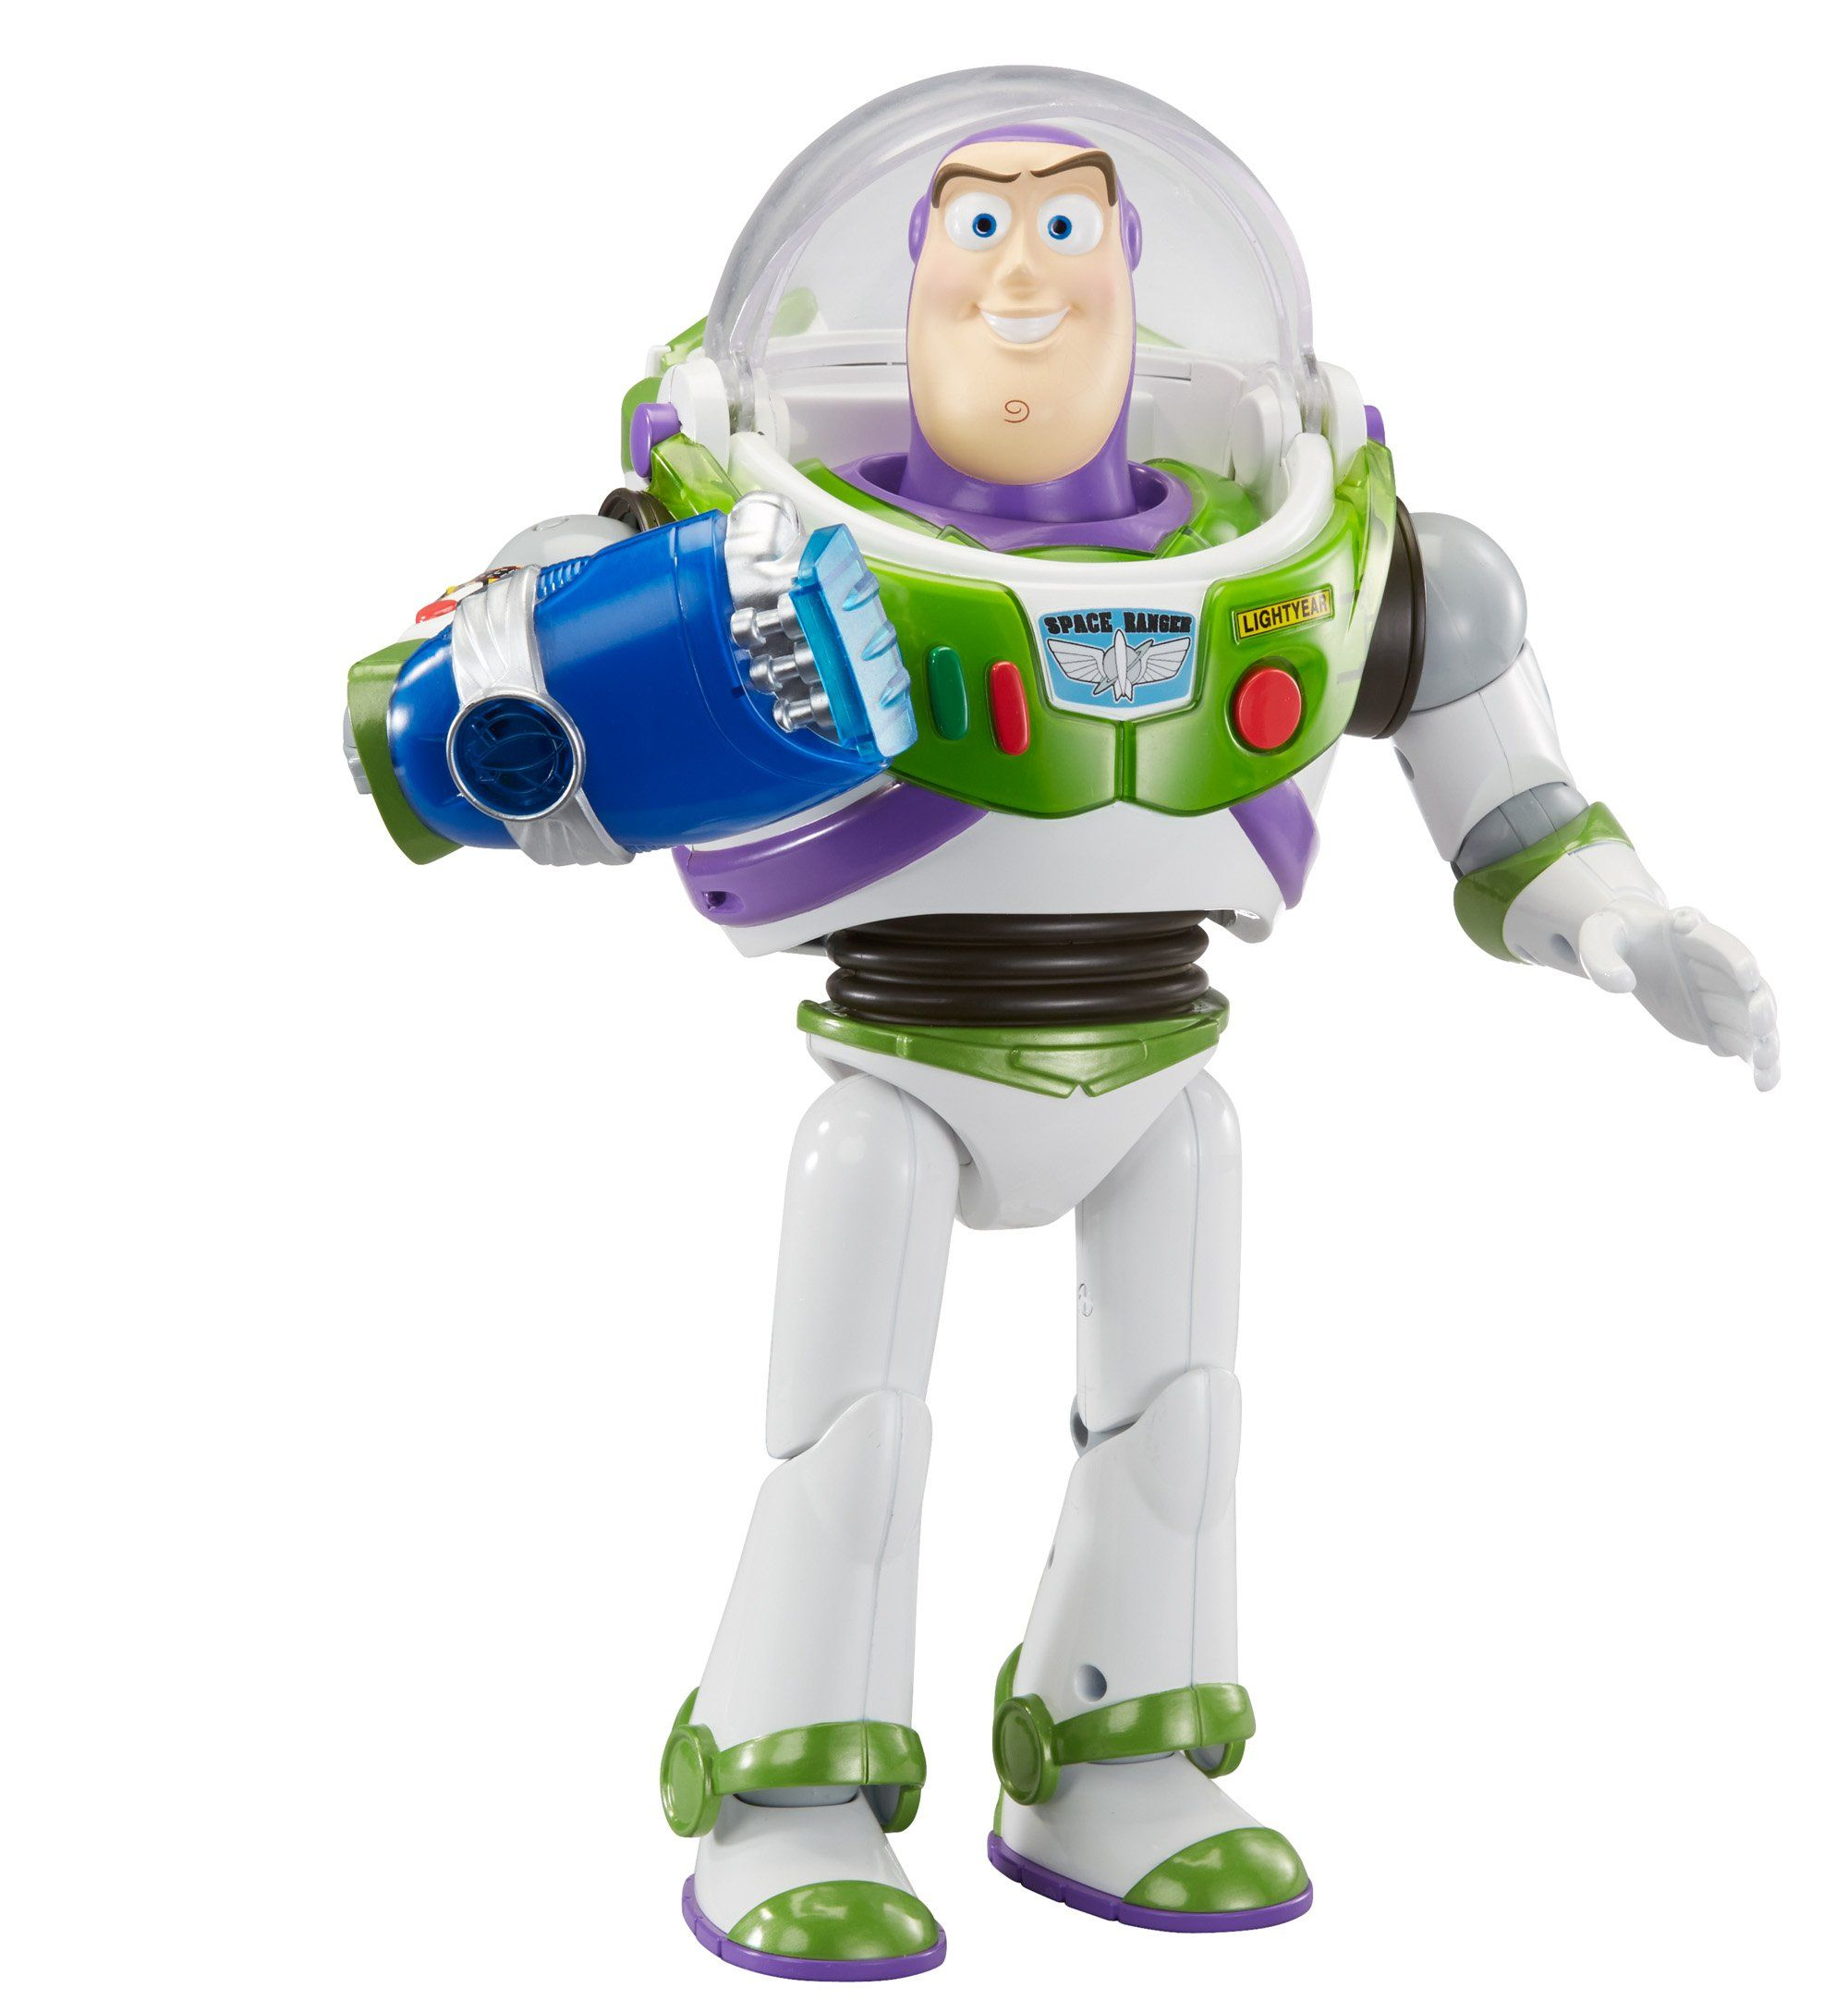 Toy Story Ultimate Action - Buzz Lightyear  Amazon.es  Juguetes y juegos 72481a6f105